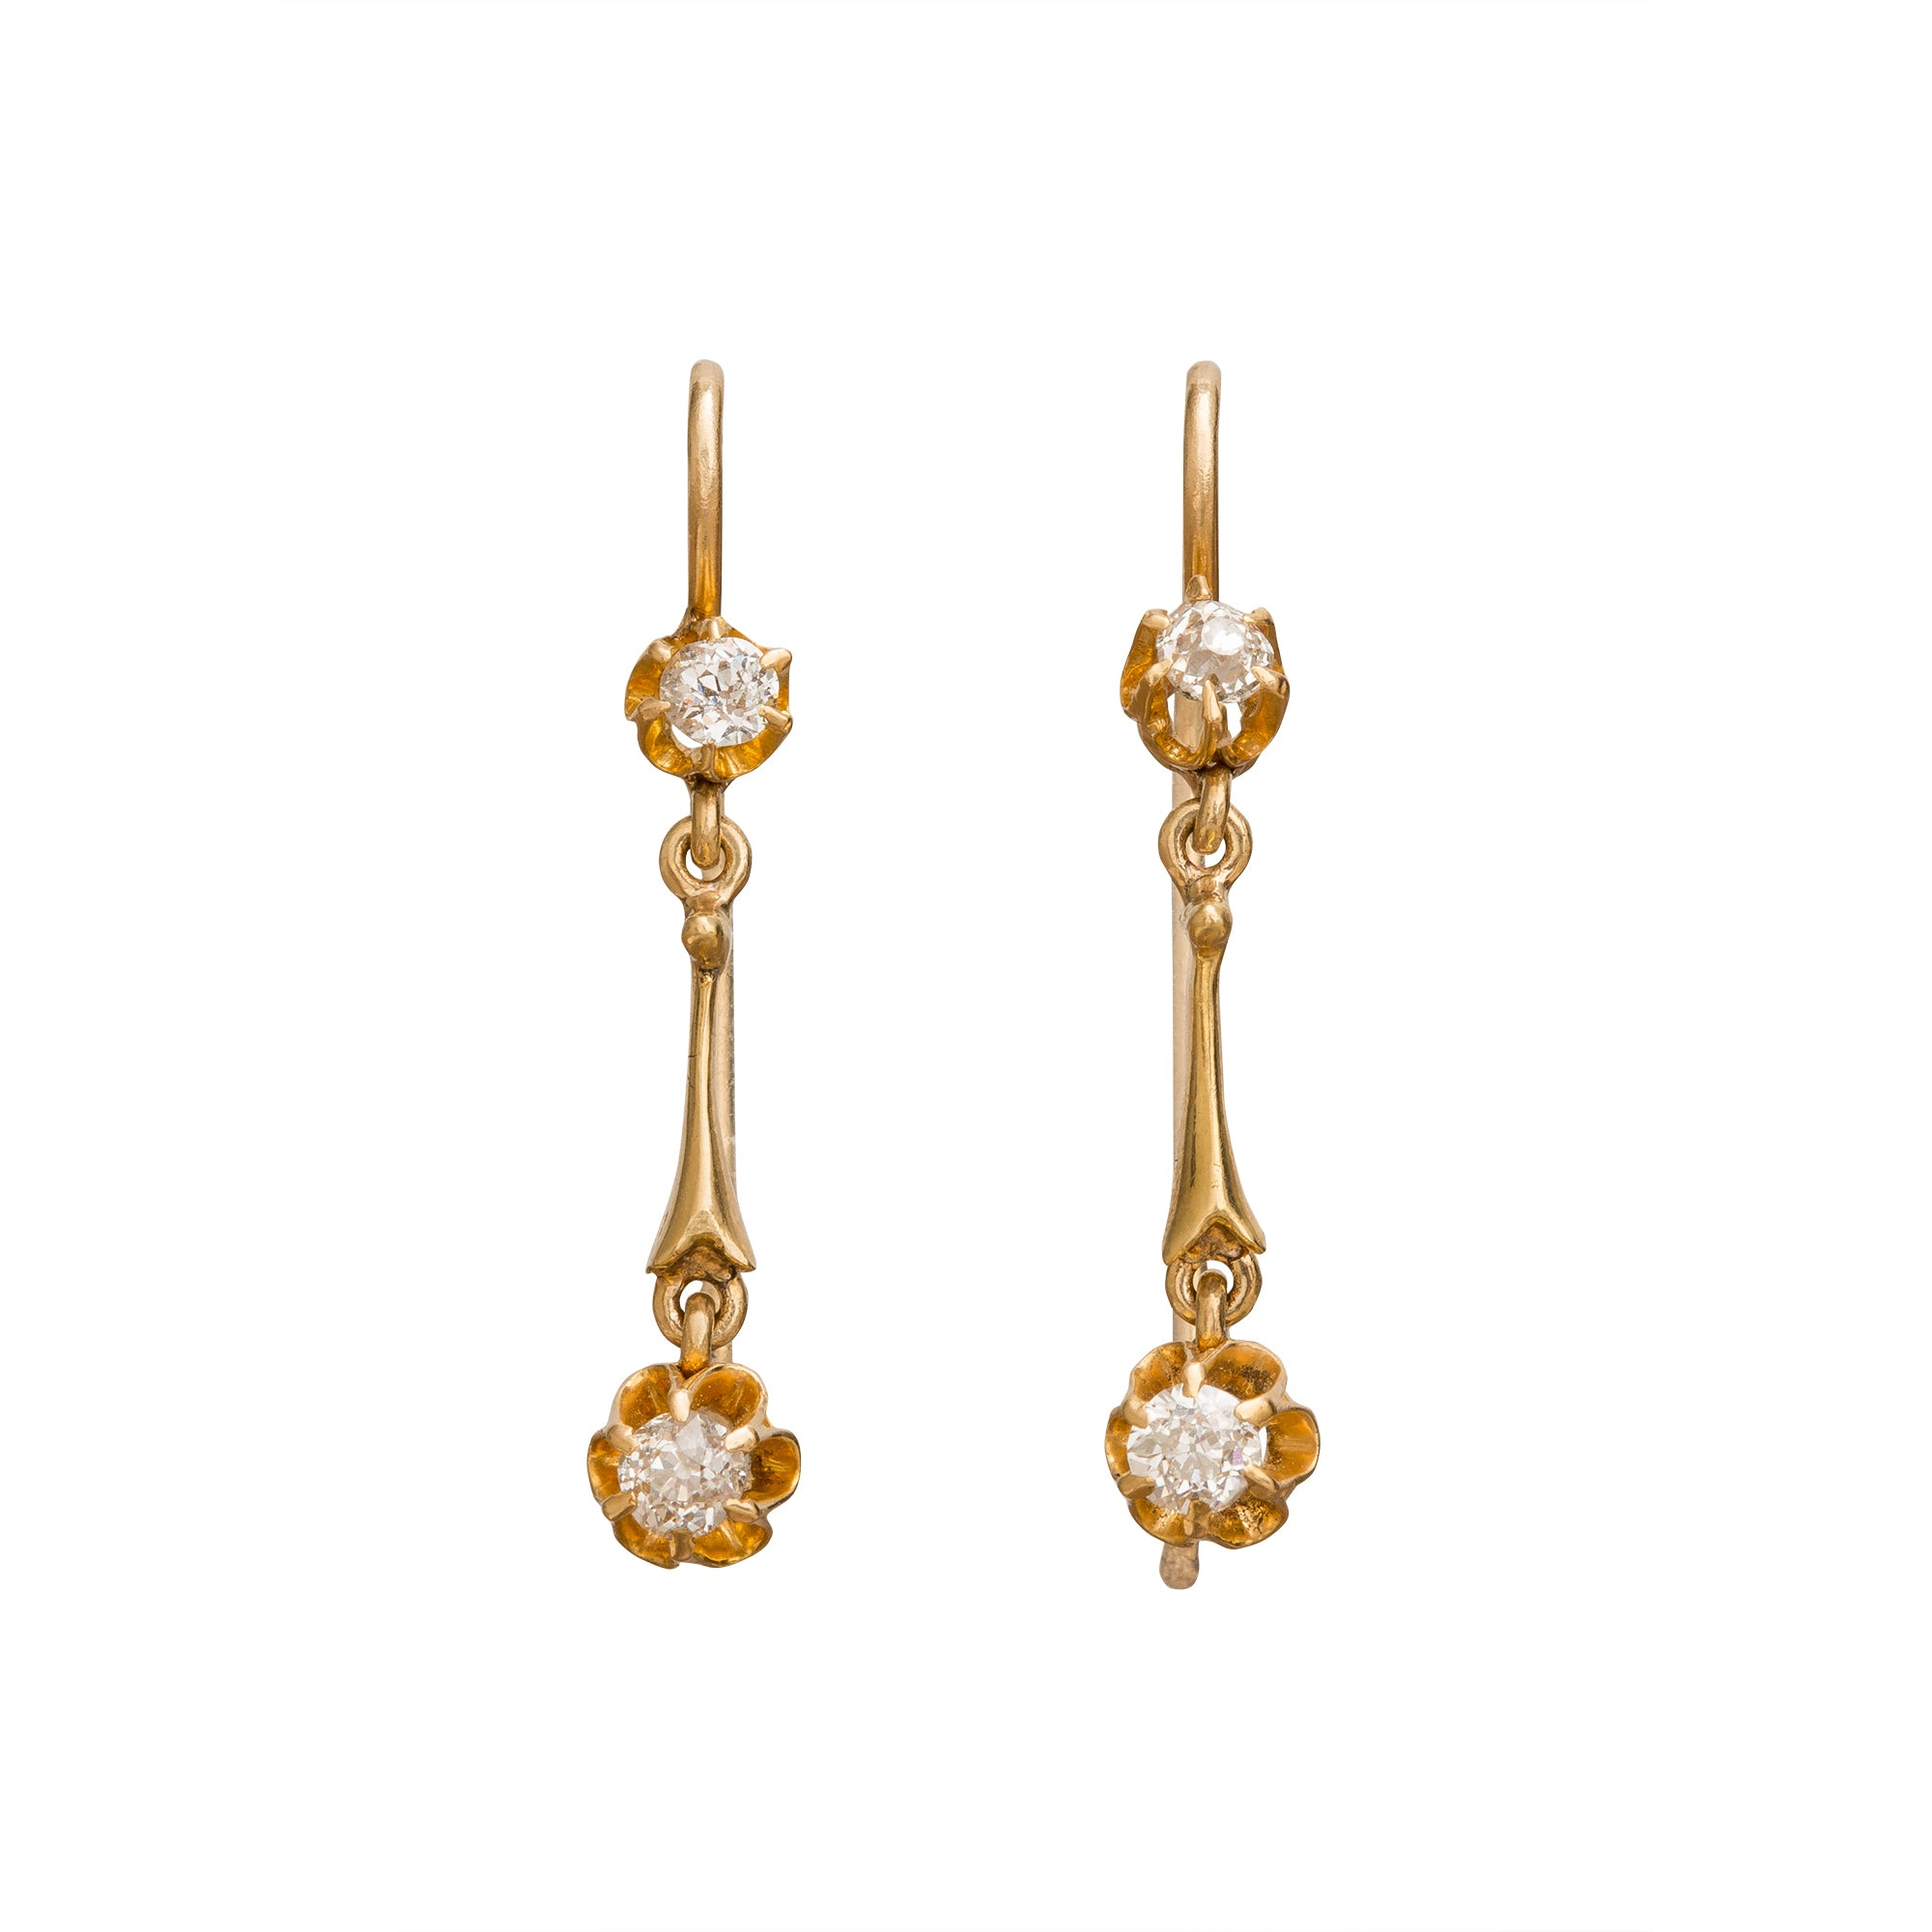 Buttercup Diamond Drop Earrings by Vintage Jewelry for Broken English Jewelry